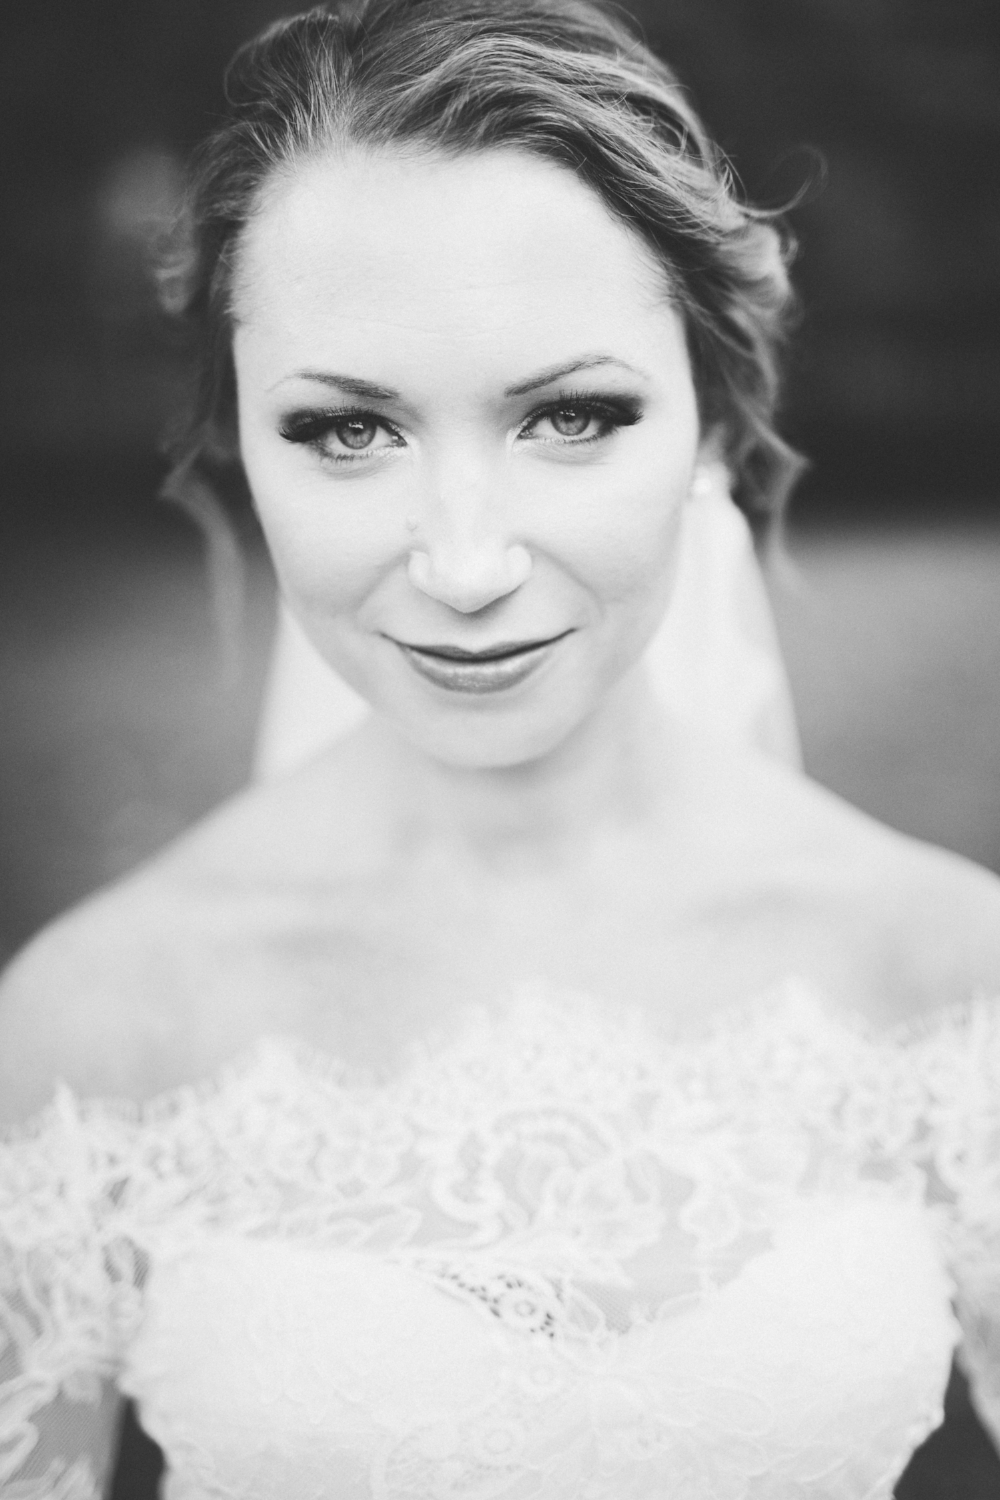 AKC-hunt-bridal-portraits-09-11-2017-033 copy.jpg